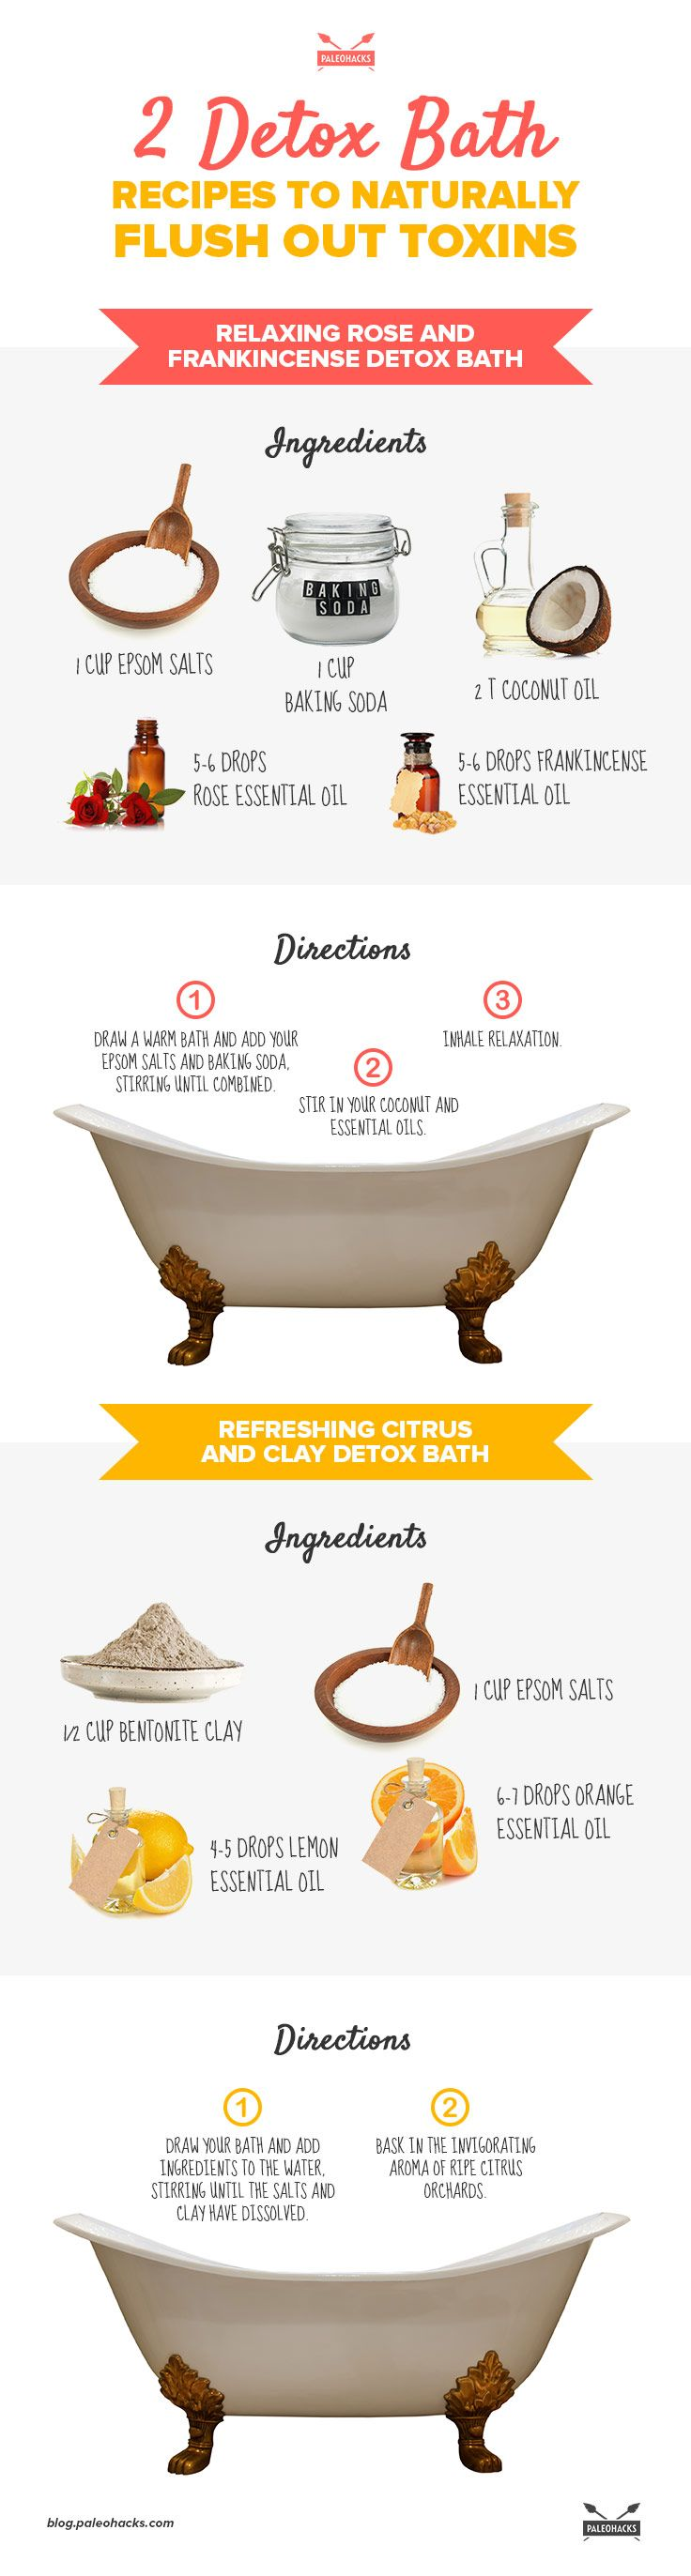 There's nothing more relaxing than submerging into a warm bath at the end of the day. But what if a simple soak could do more than just ease tension and sore muscles? For the full article, visit us here: http://paleo.co/detoxbathrcp